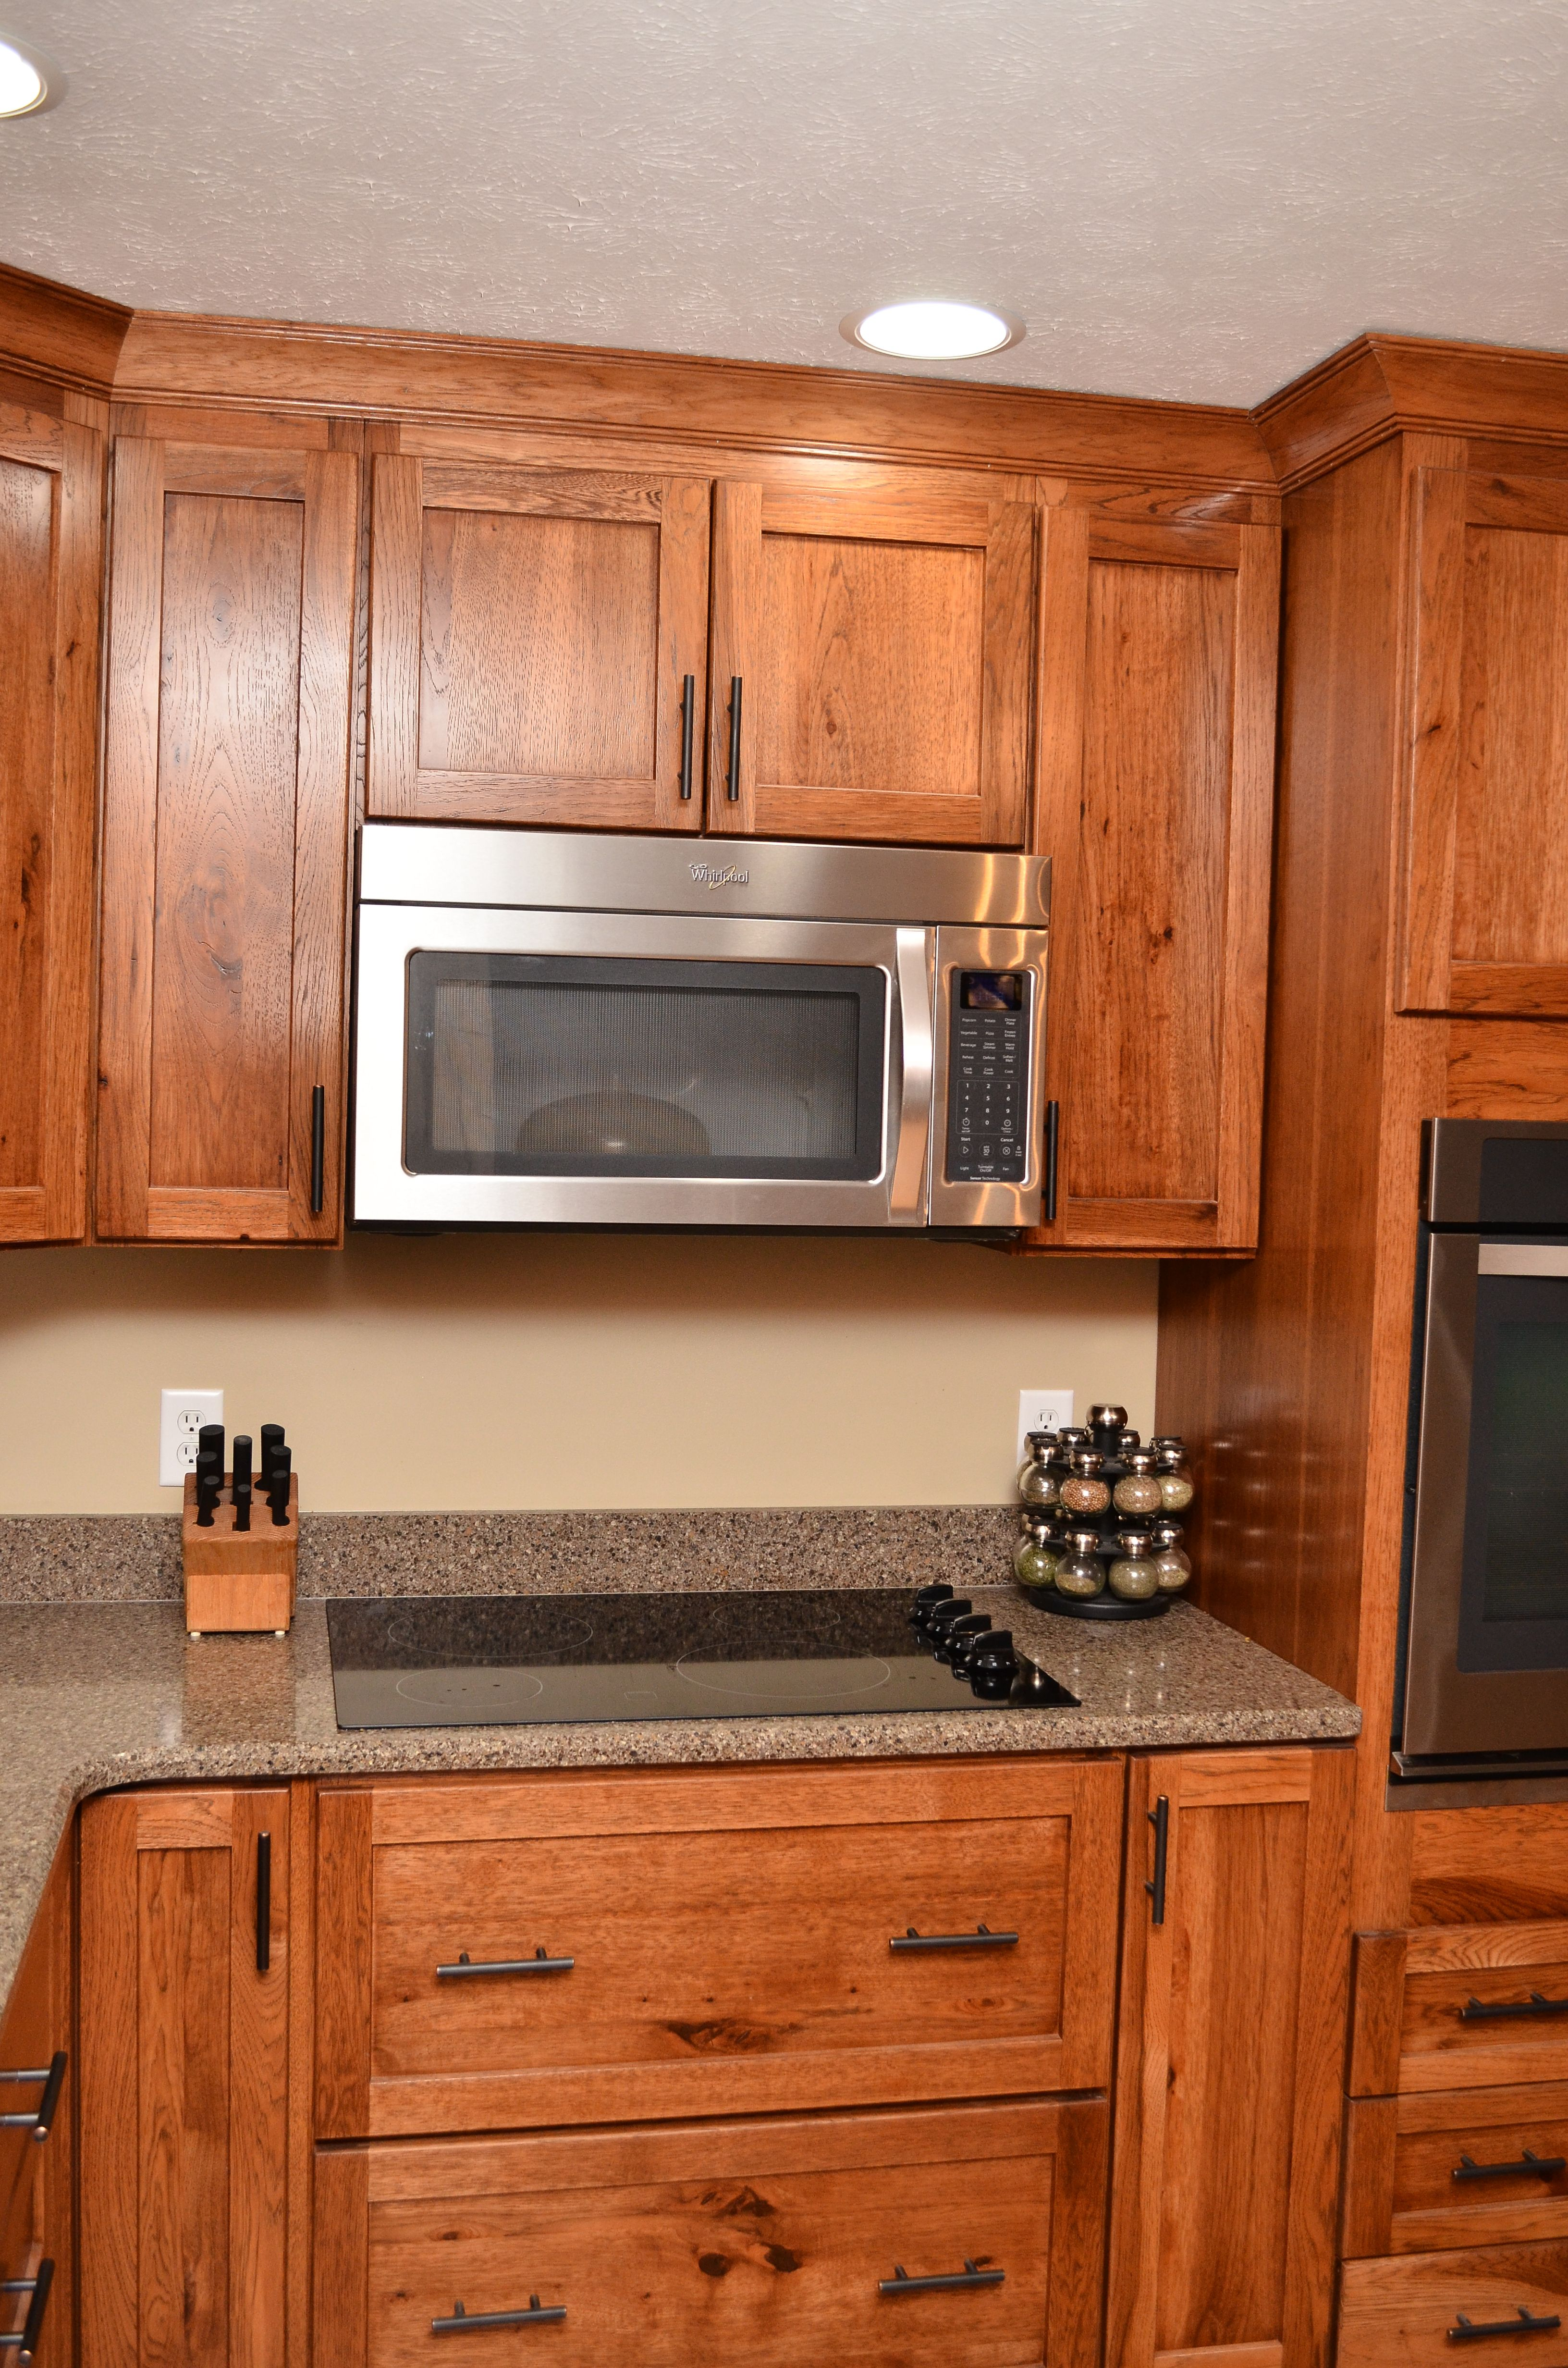 Haas Shakertown Rustic Hickory Pecan Kitchen Cabinets Wood Kitchen Wood Kitchen Cabinets